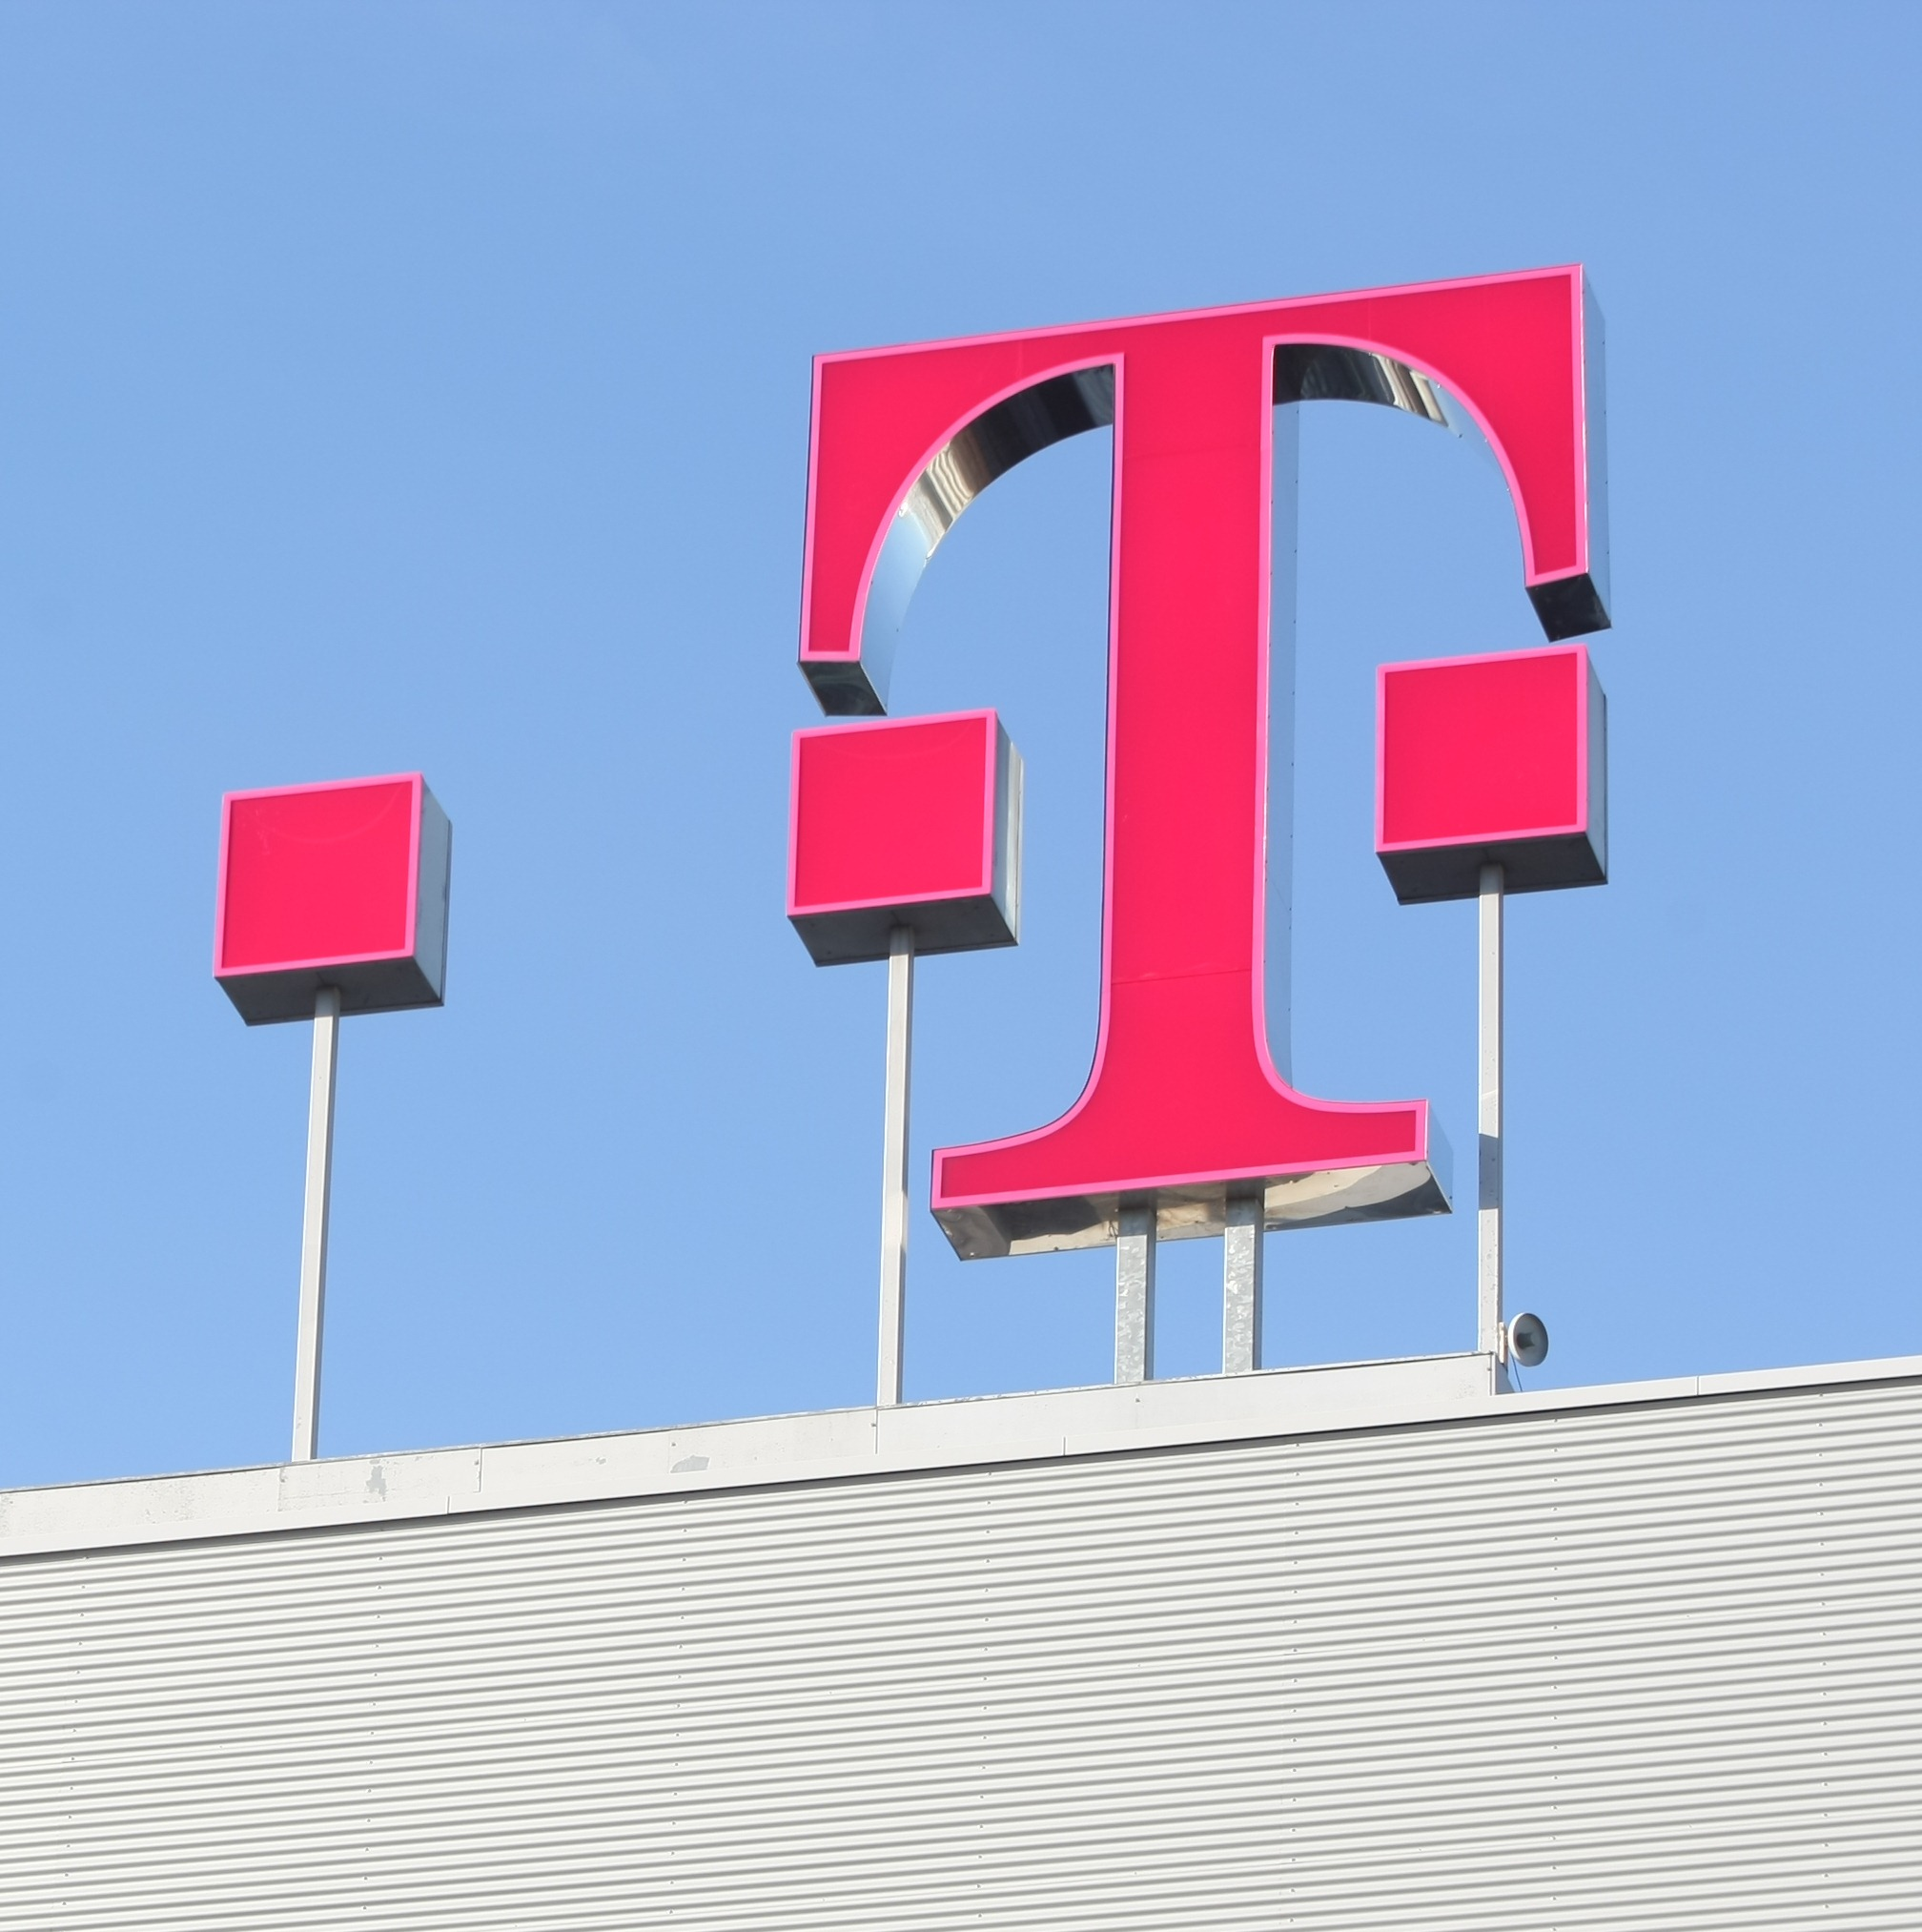 Deutsche Telekom in T-Mobile's Acquisition of MetroPCS